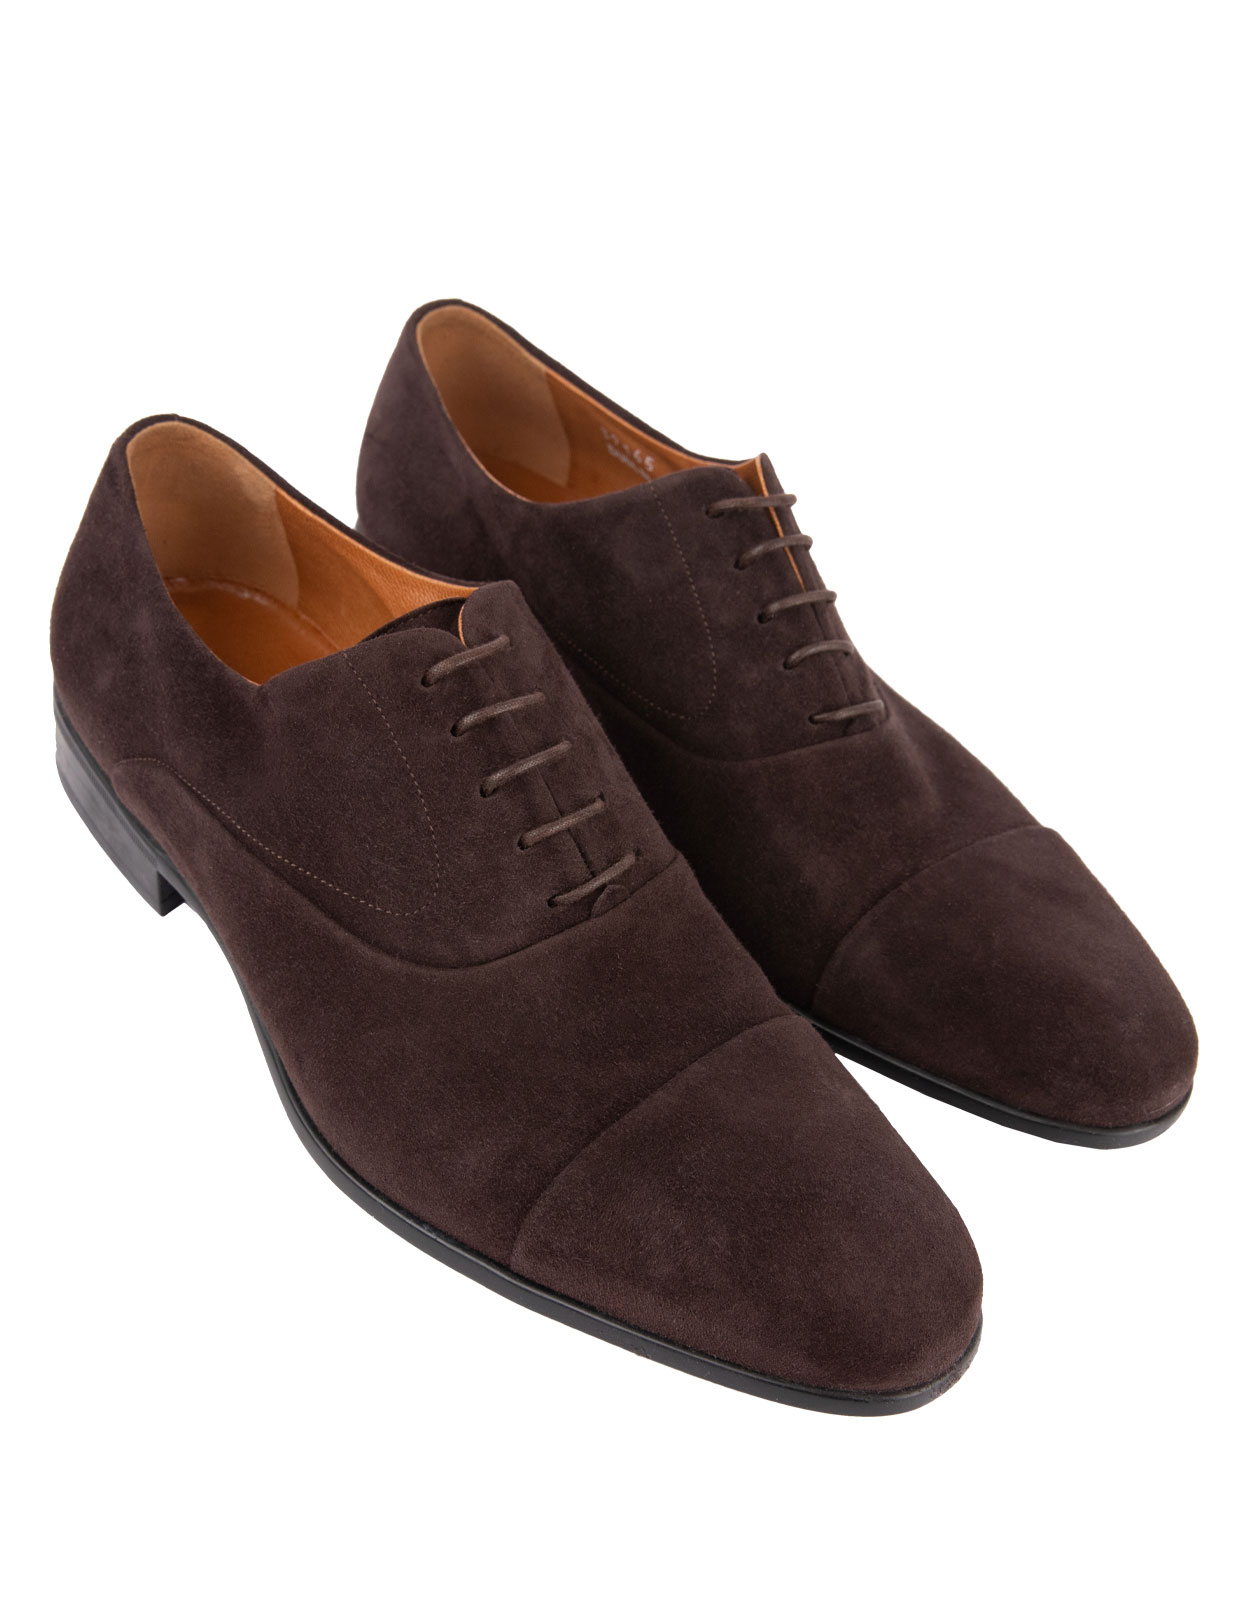 Dublin Oxford Shoes Suede Leather Rubber Sole DarkBrown